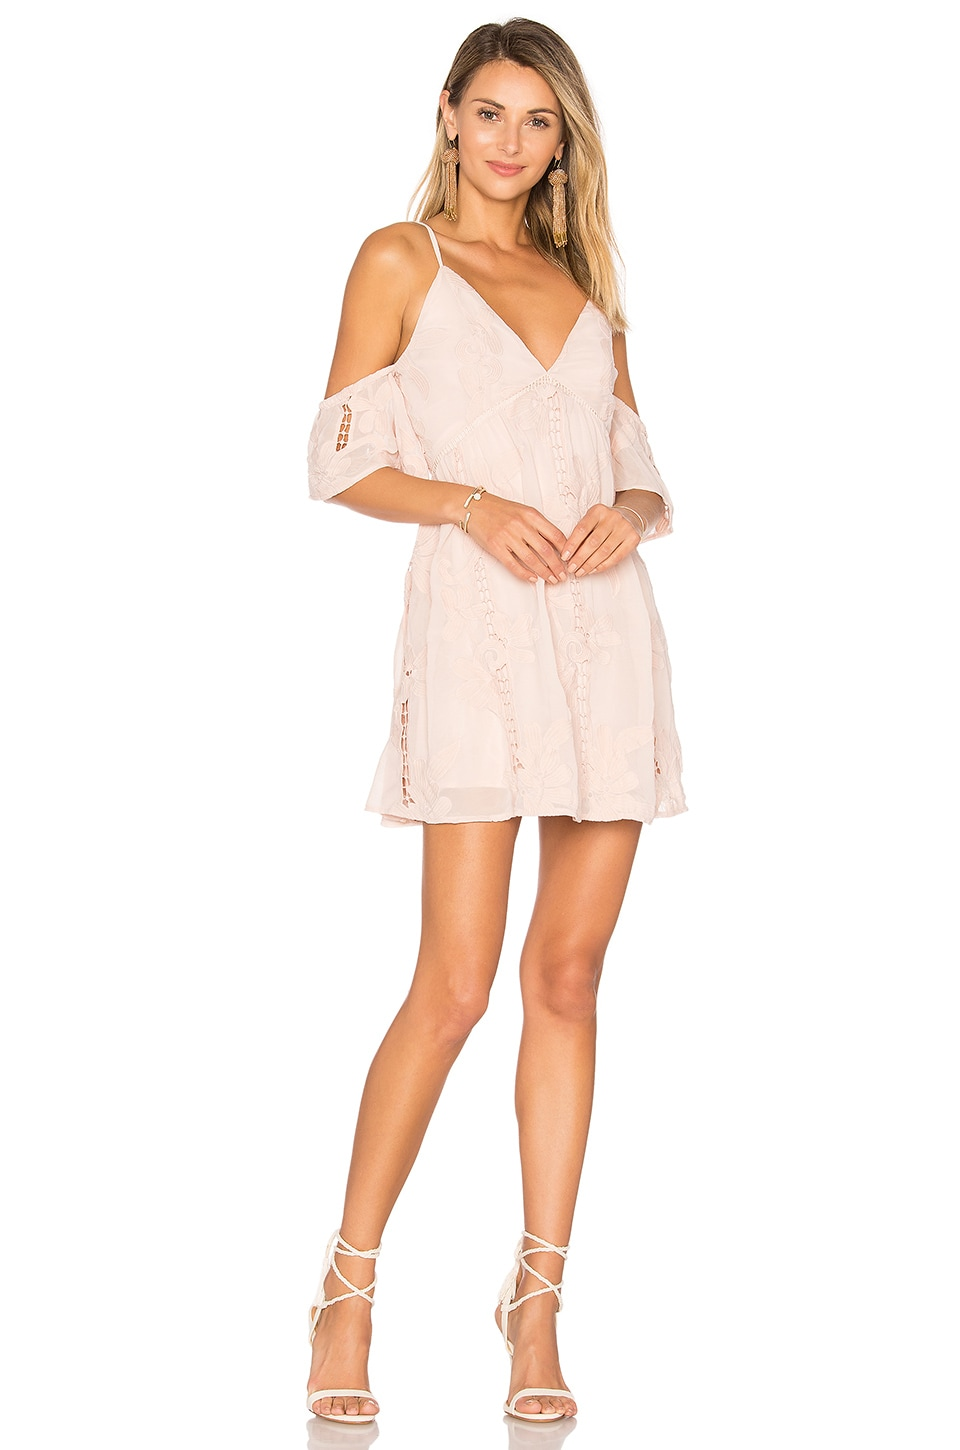 Lovers + Friends Wishful Dress in Nude